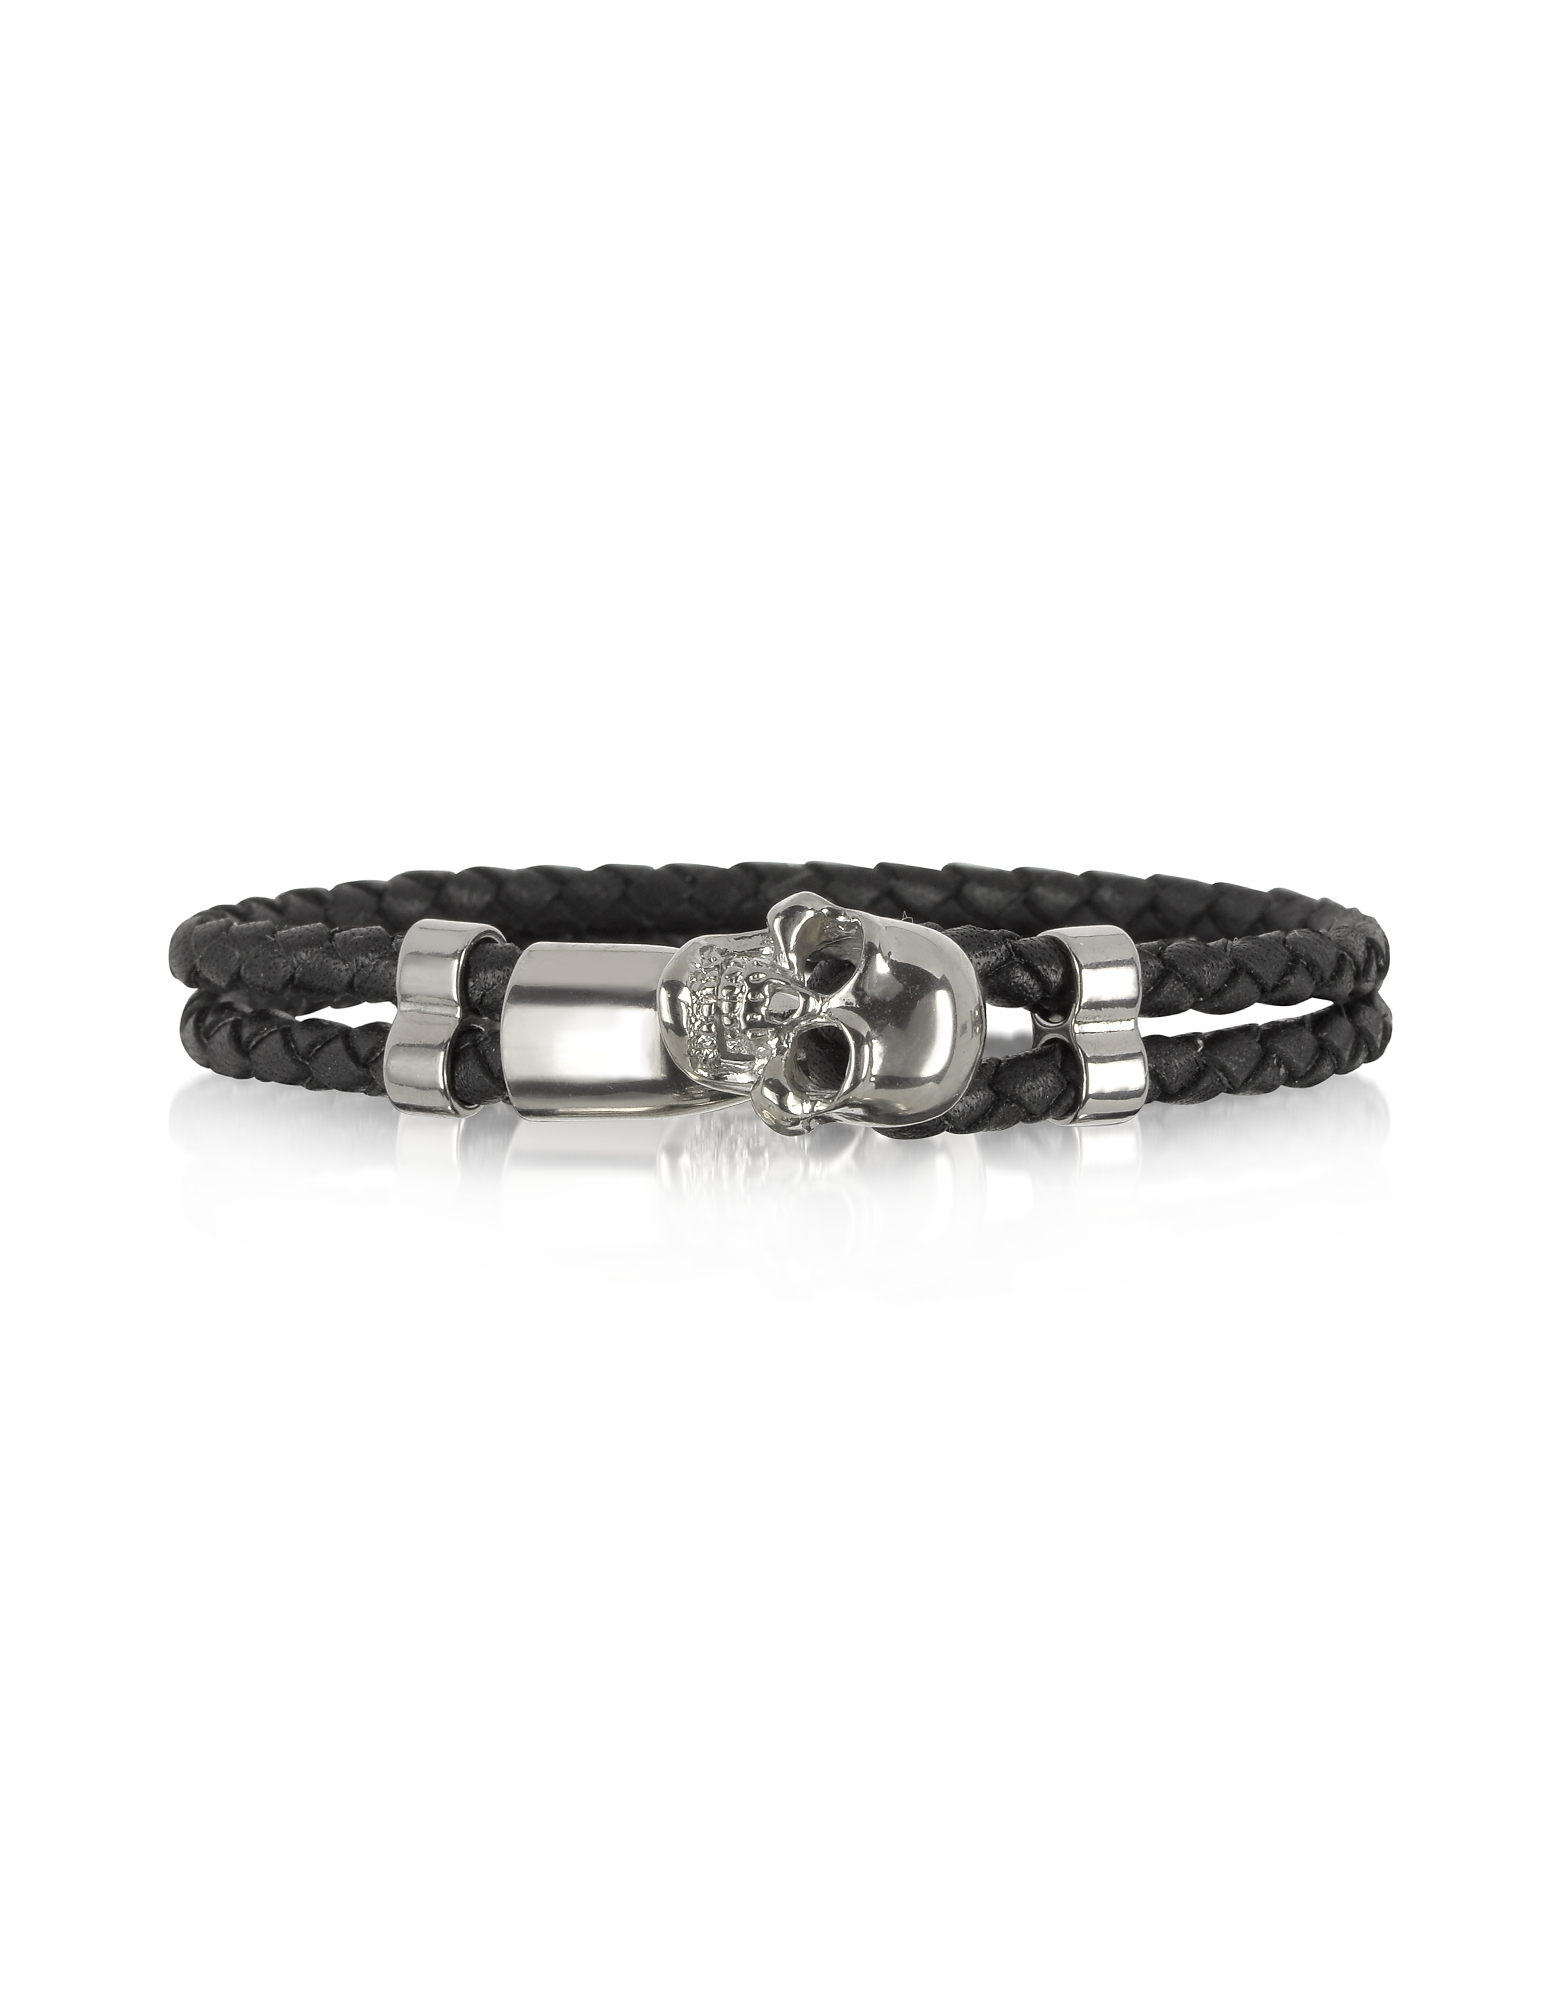 Forzieri Men's Bracelets, Skull Silver Tone Brass and Leather Men's Bracelet